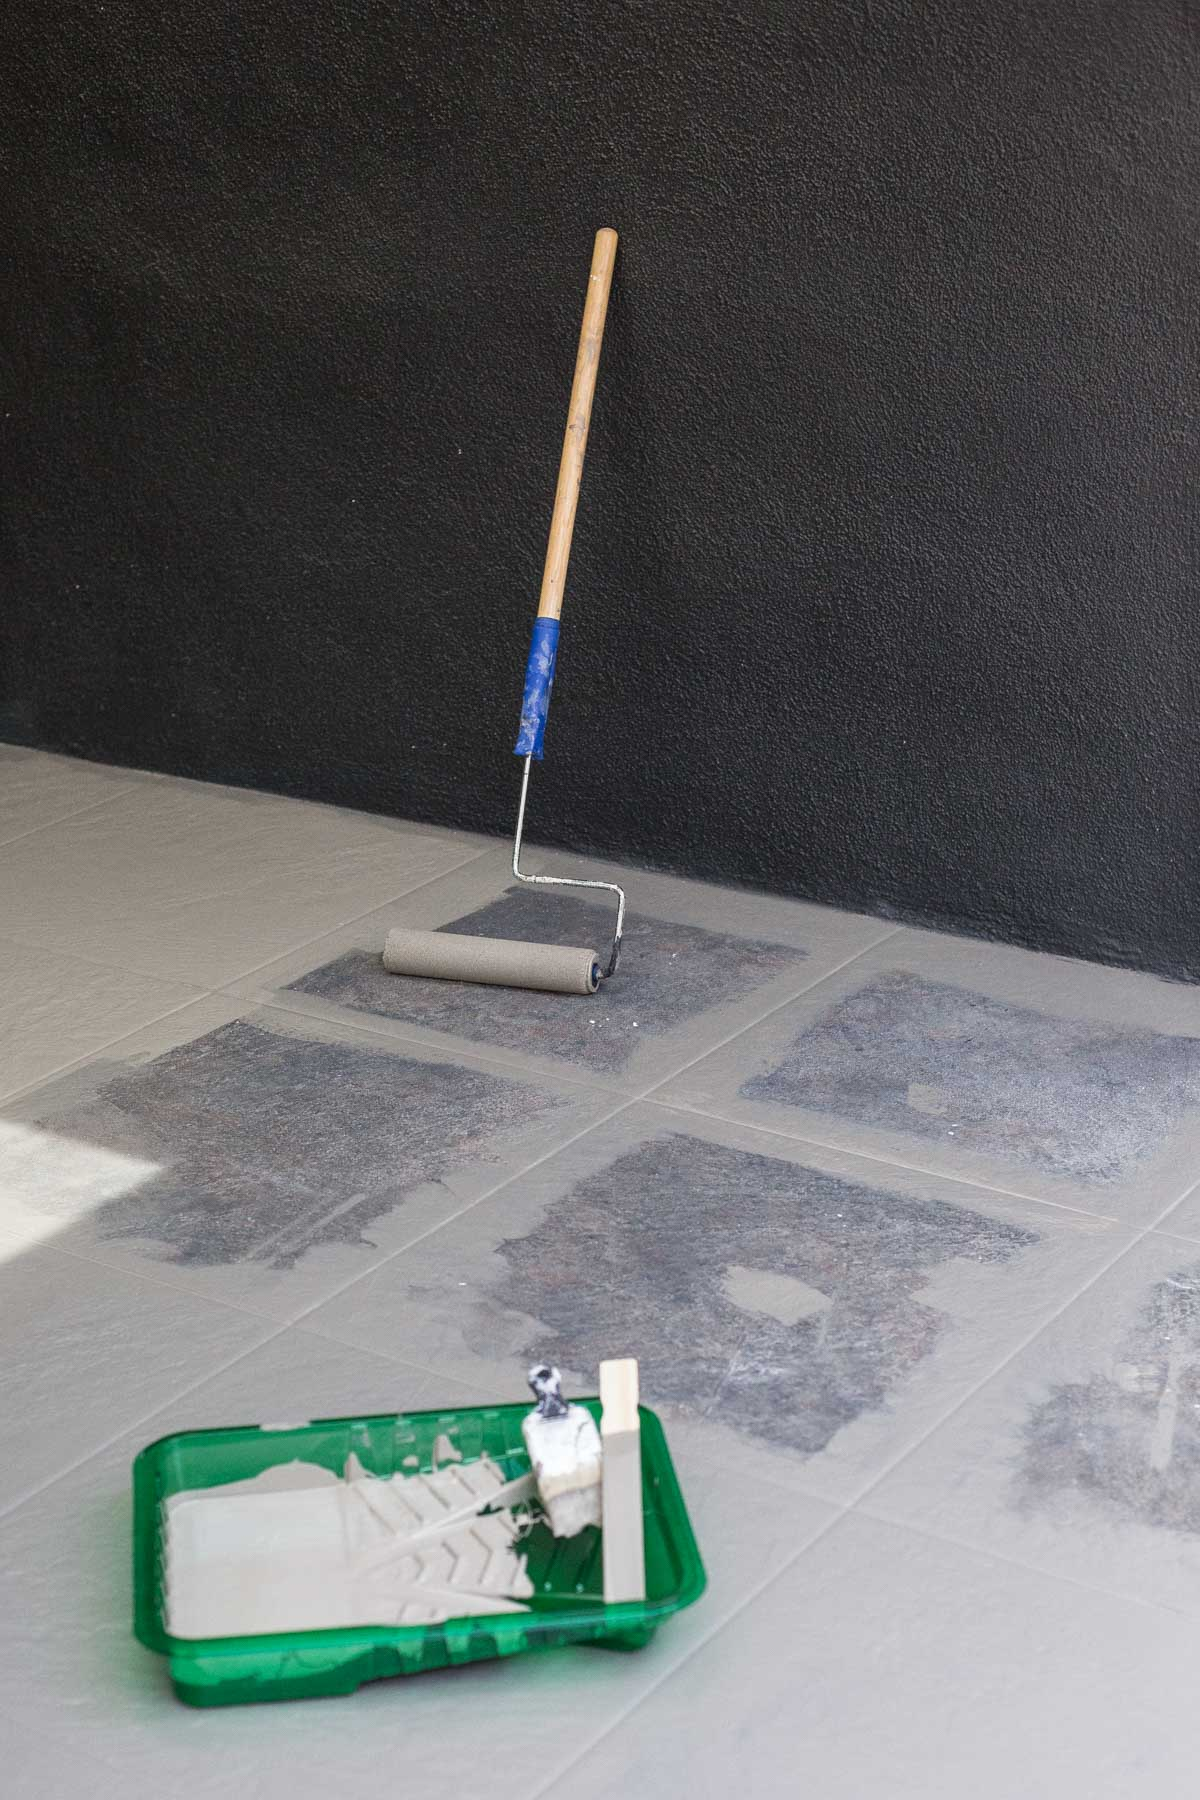 Painting tile floors with a pant roller and brush.